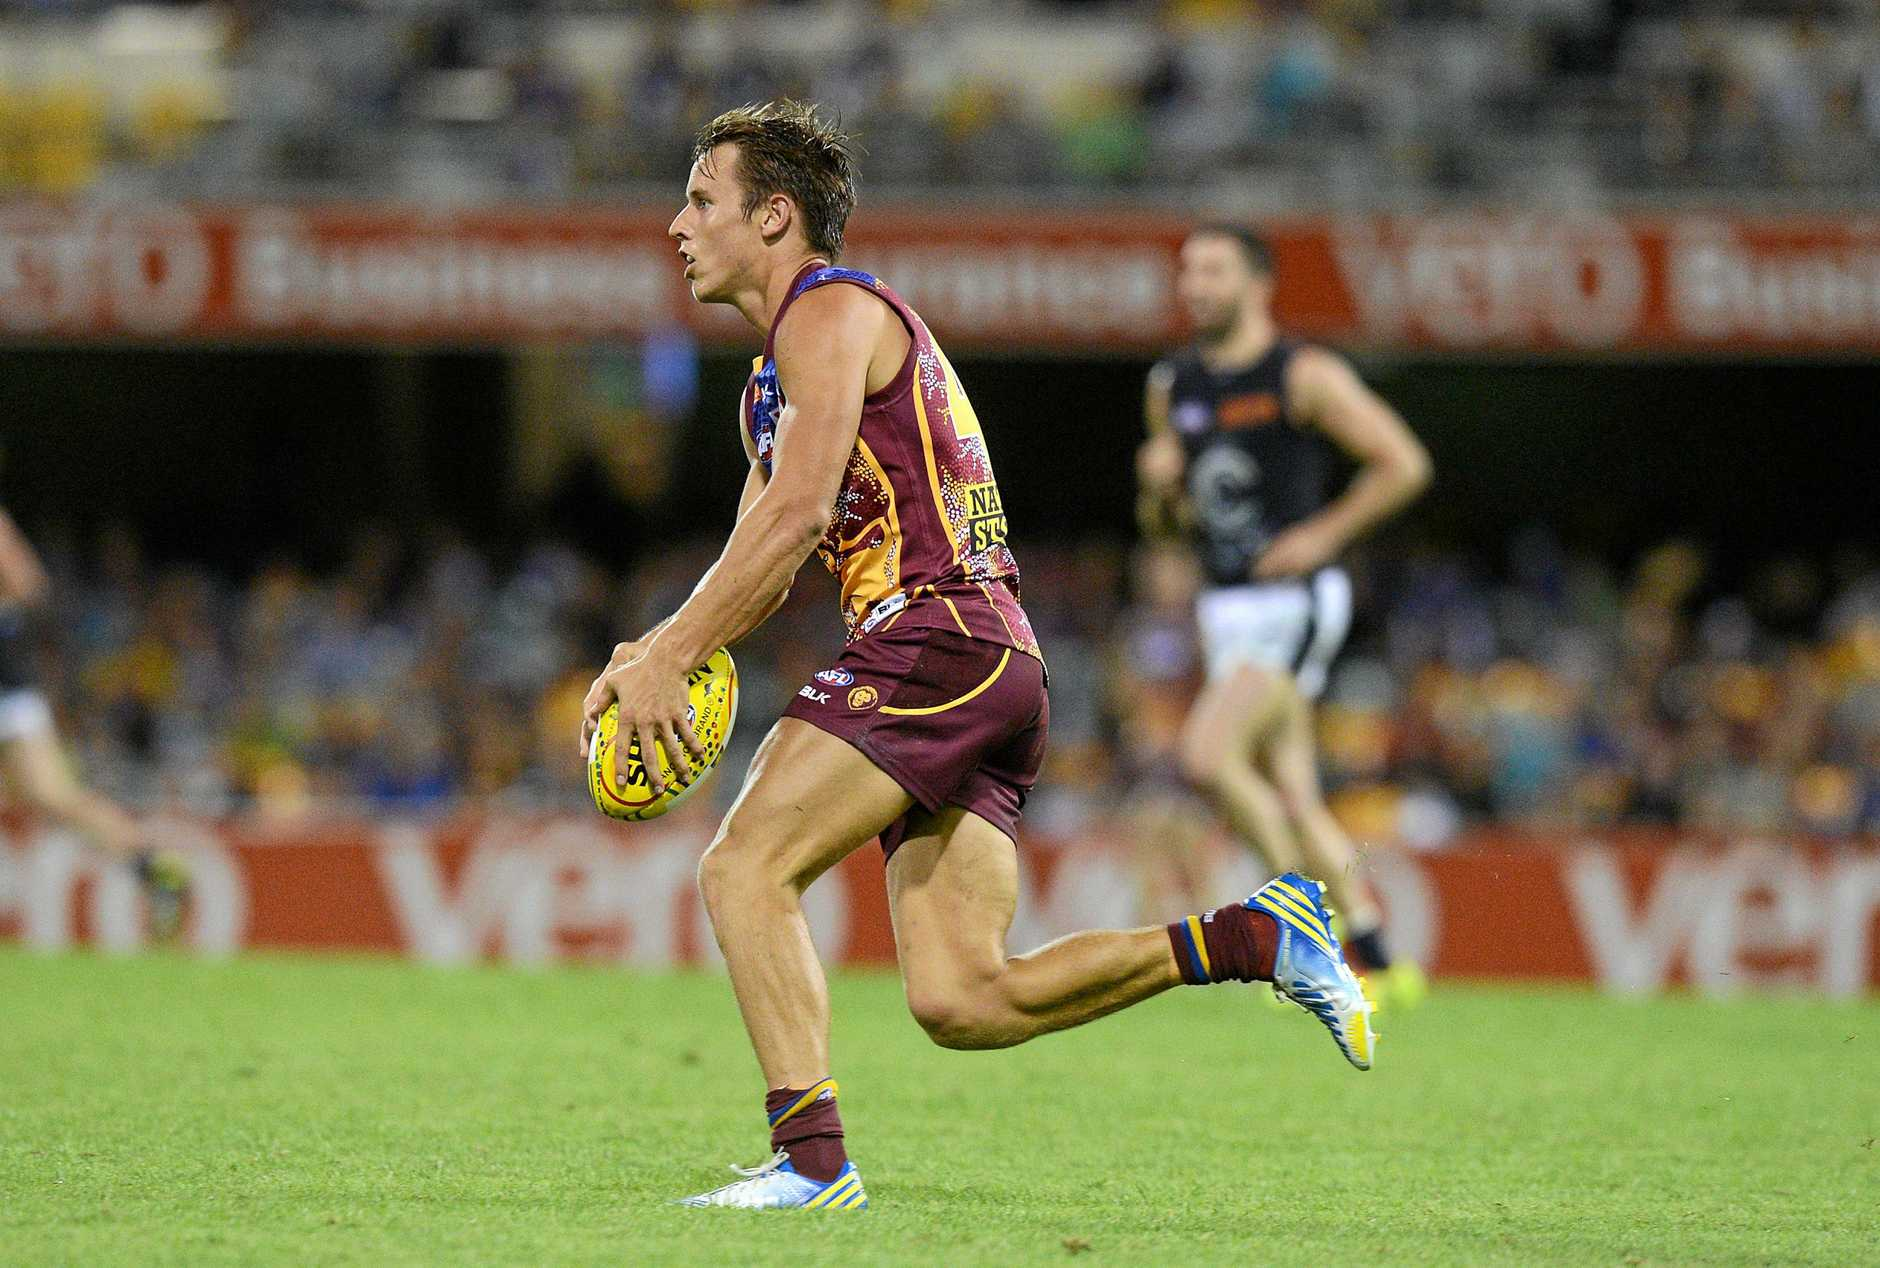 Zac O'Brien in a match again Carlton at The Gabba in 2014 during his professional football career with the Brisbane Lions.